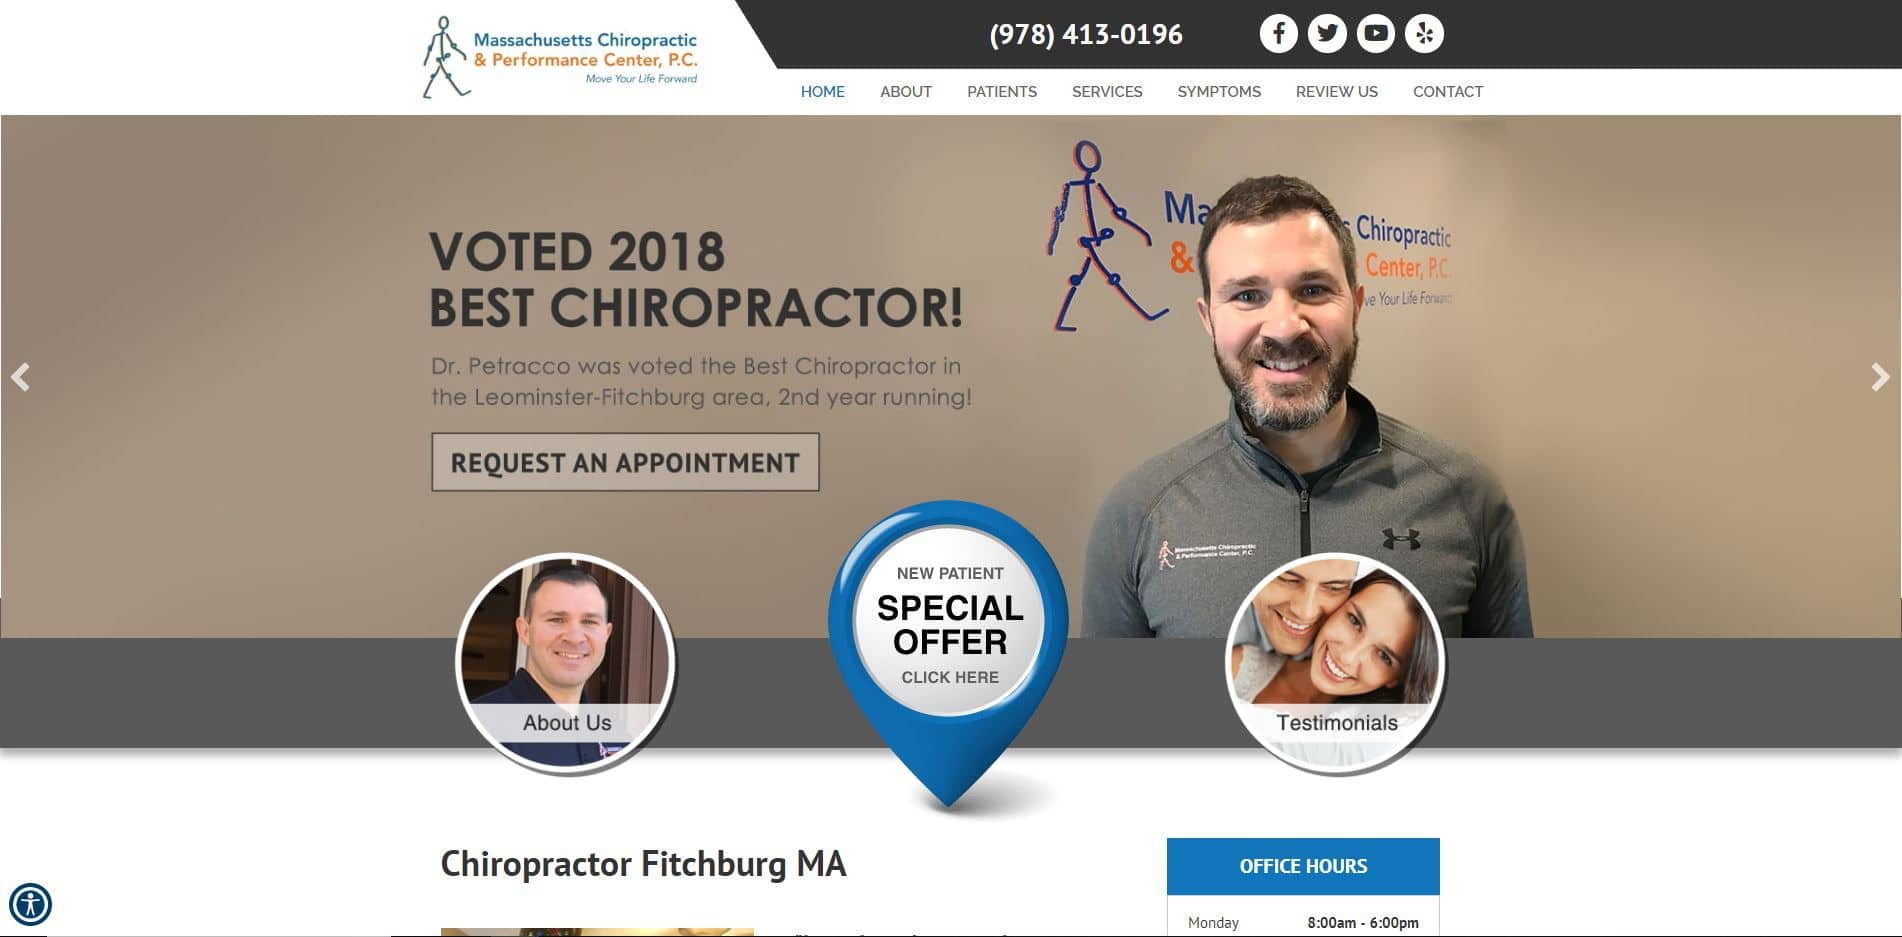 Chiropractor in Fitchburg